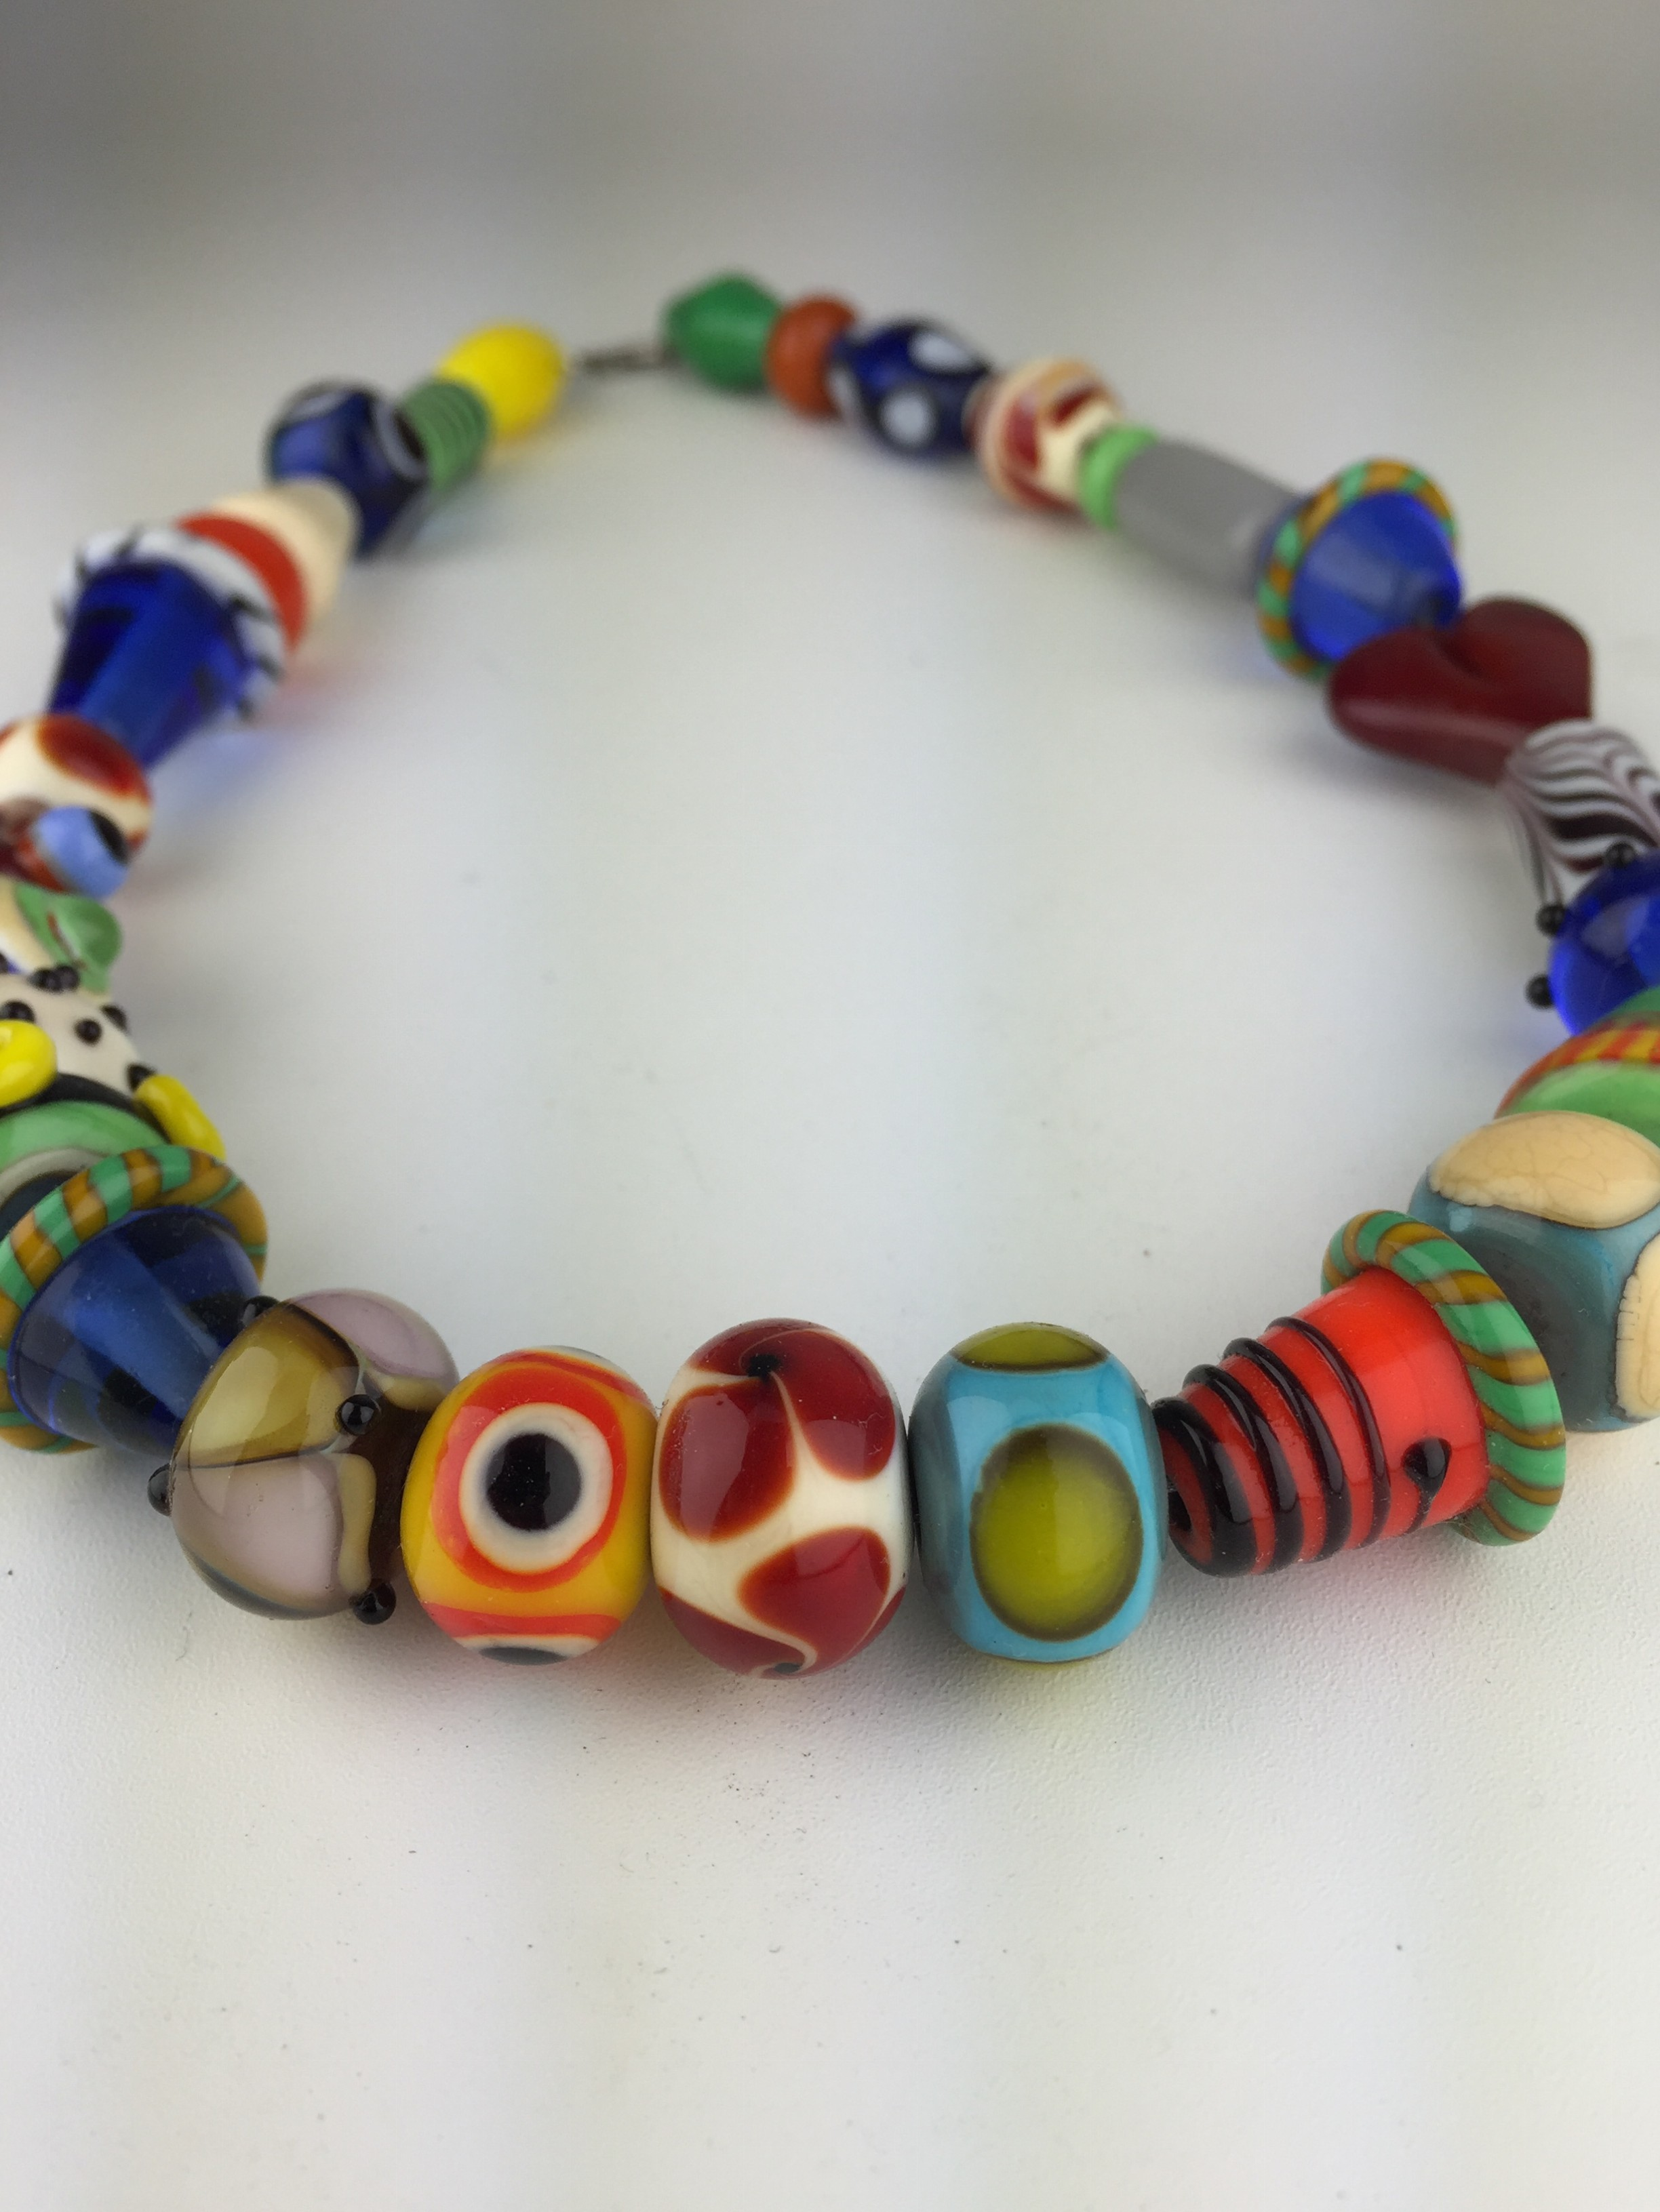 Beads Continued